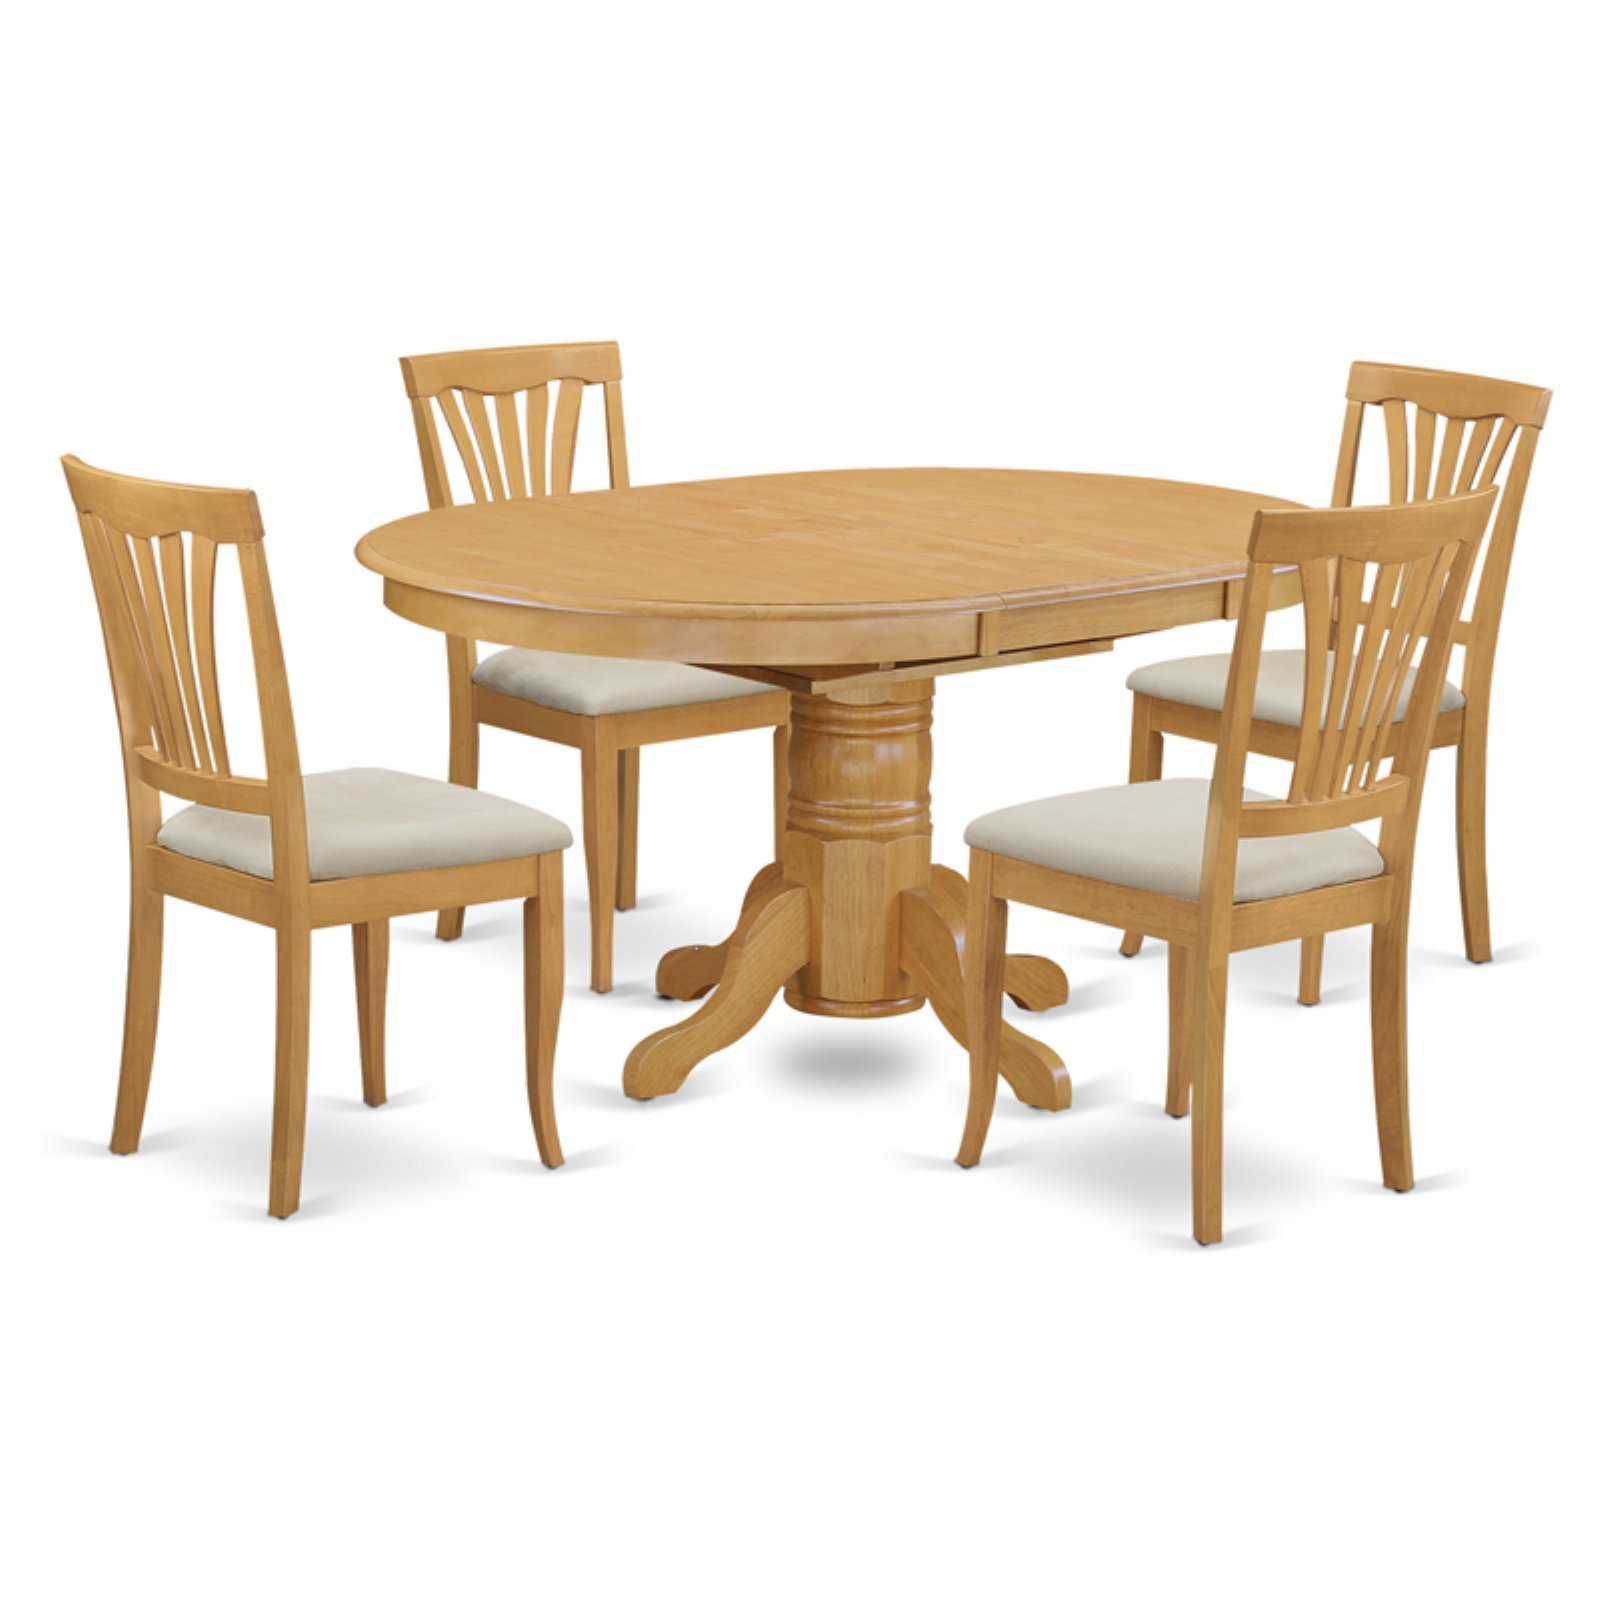 East West Furniture Avon 5 Piece Pedestal Oval Dining Table Set with Microfiber Seat Chairs